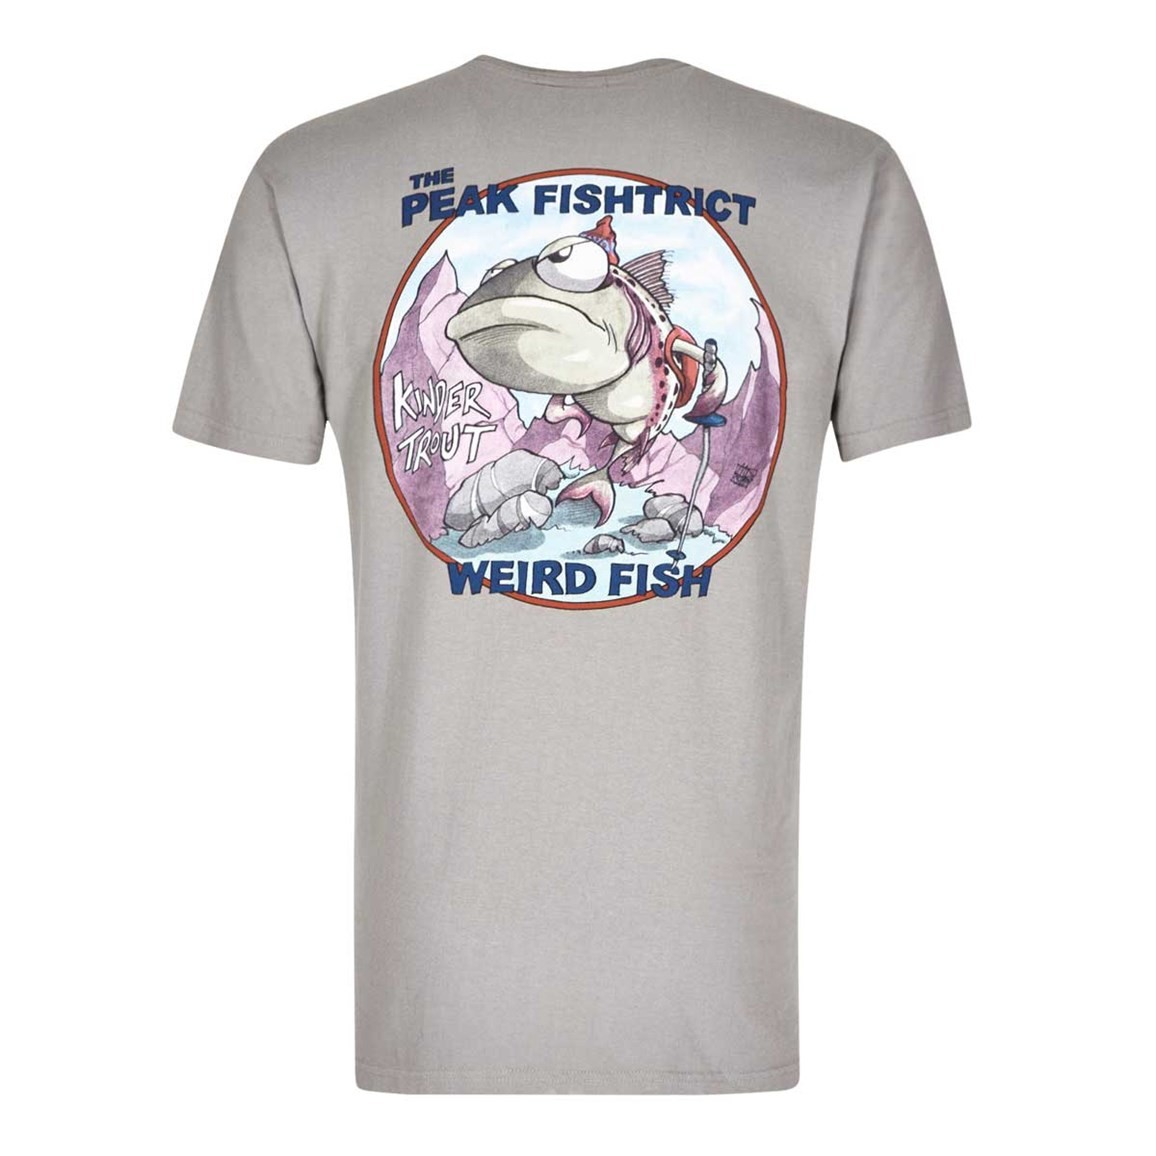 Weird Fish Peak Fishtrict Printed Artist T-Shirt Frost Grey